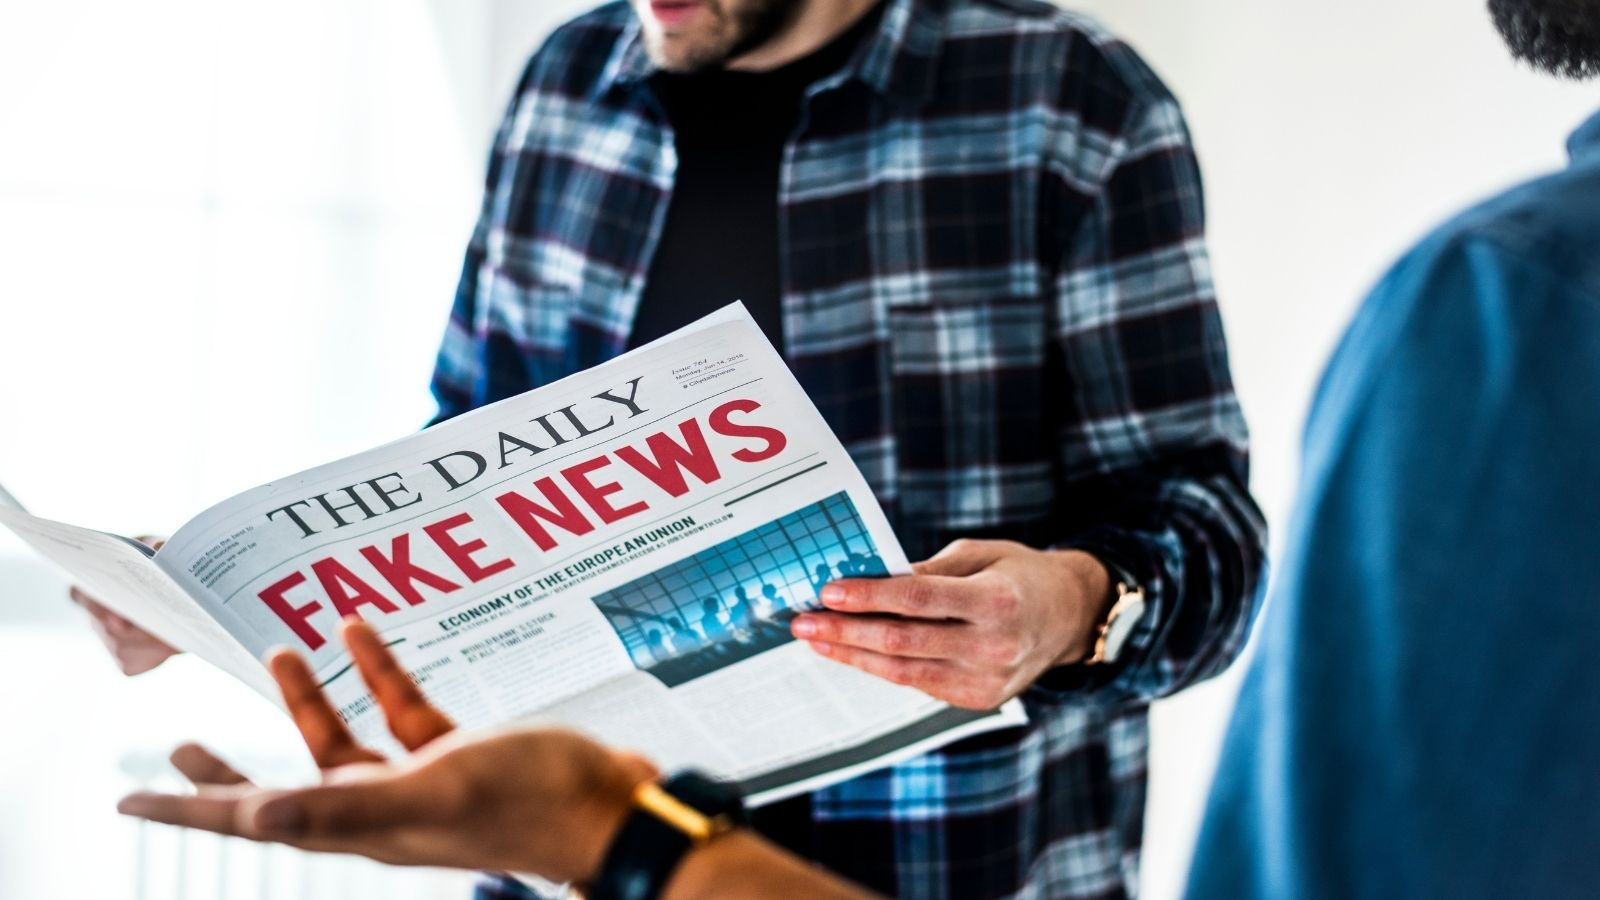 A man holds fake news newspaper to conceptualize controversy